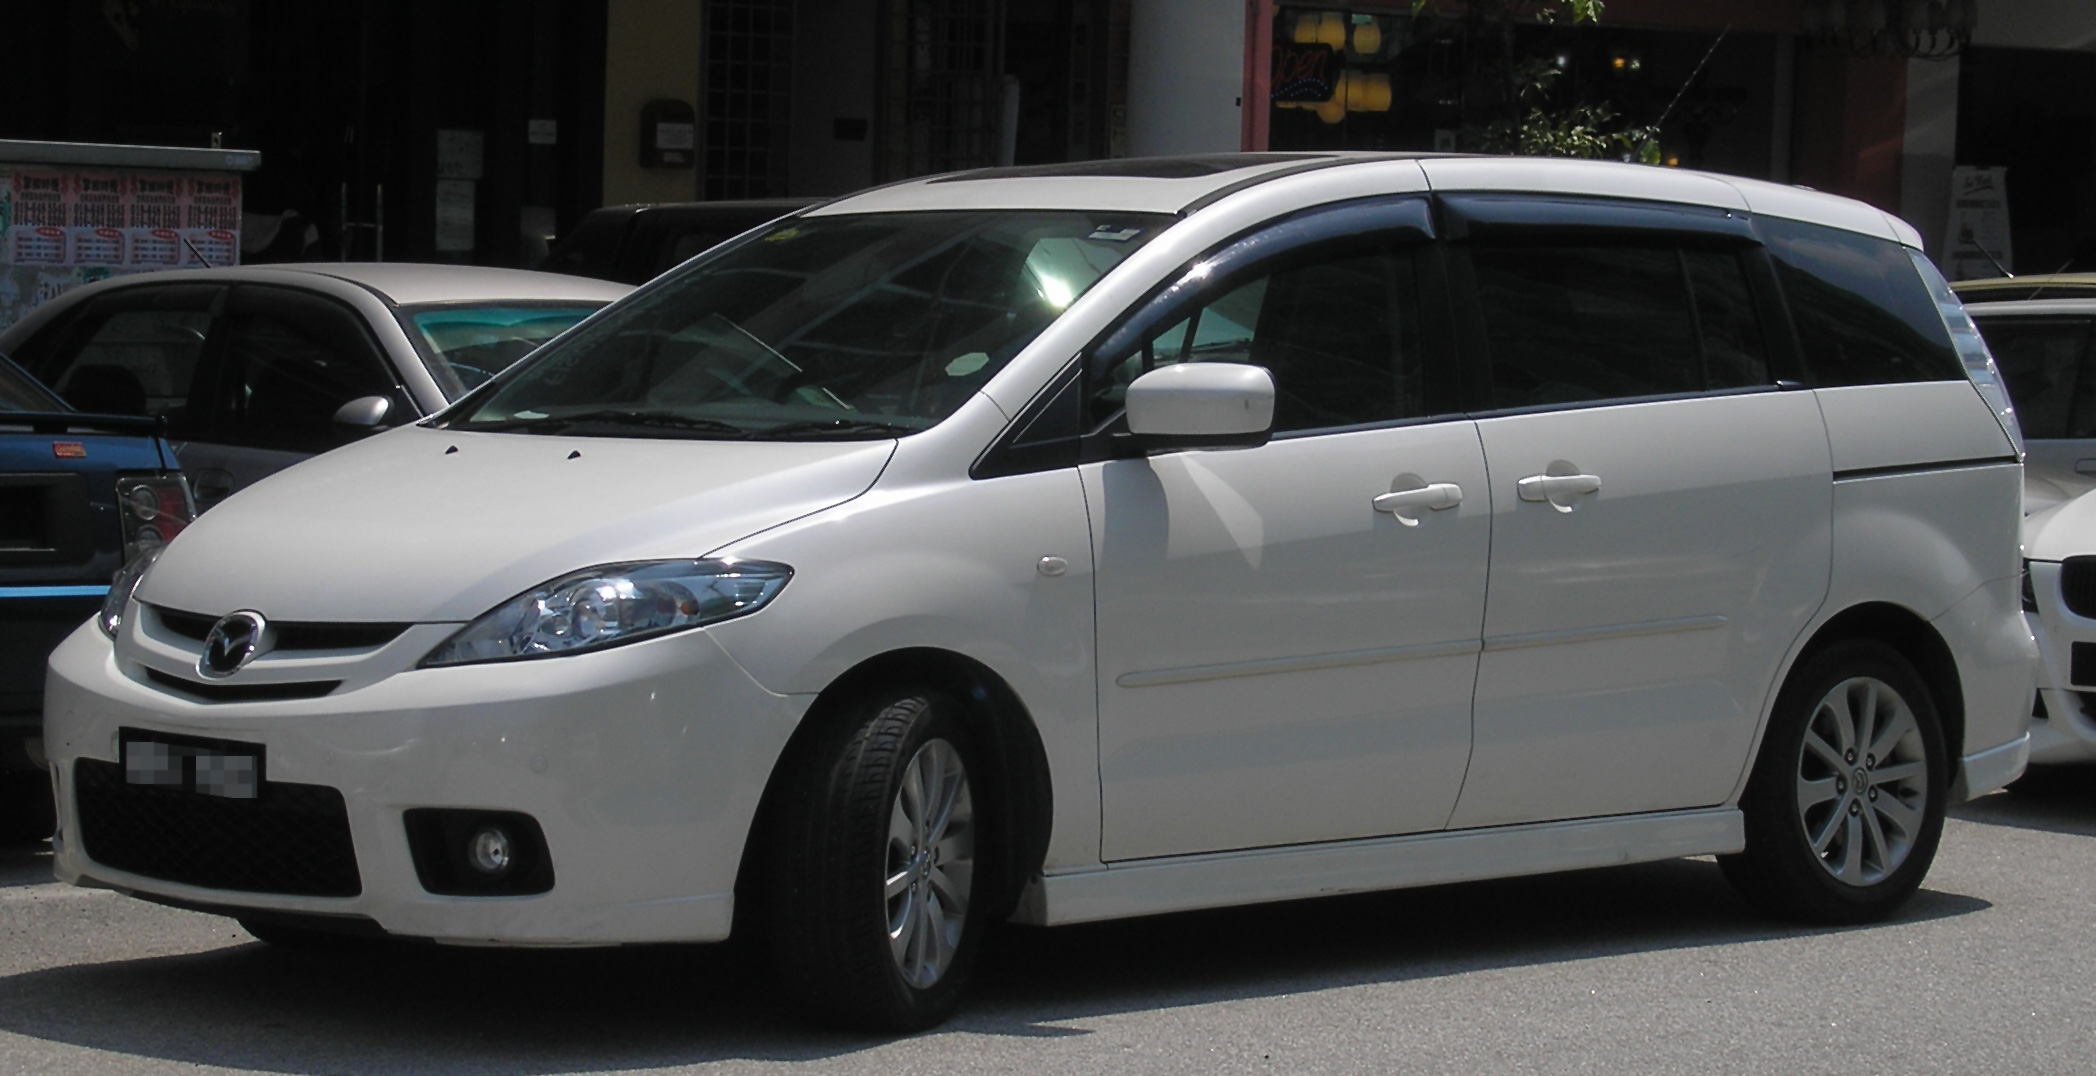 sale the has minivan mazda killed for officially news